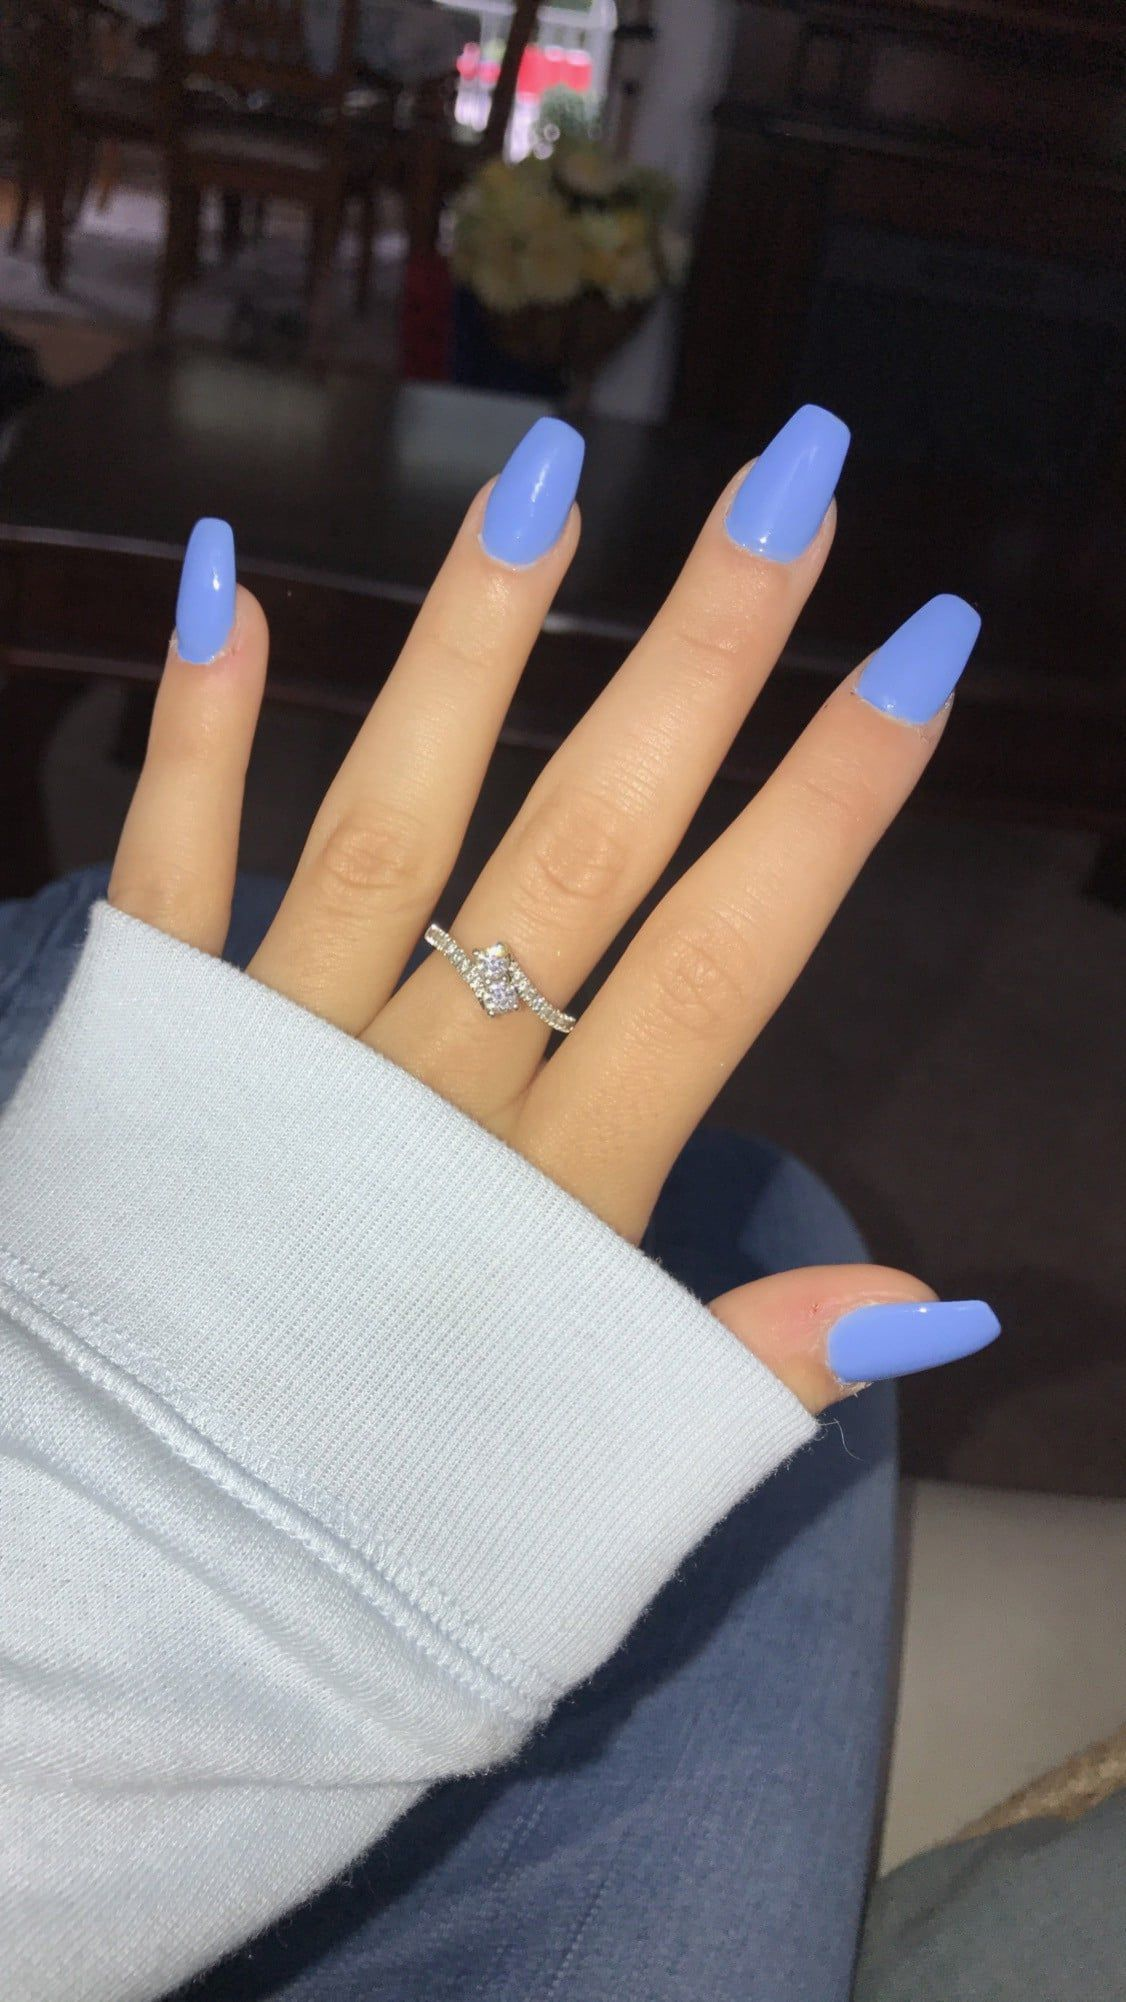 22 New Nail Designs For 11 Year Olds Coffin Nails Colors 2018 Inspirational Nail Art Idea Un Acrylic Nails Coffin Short Coffin Shape Nails Blue Acrylic Nails